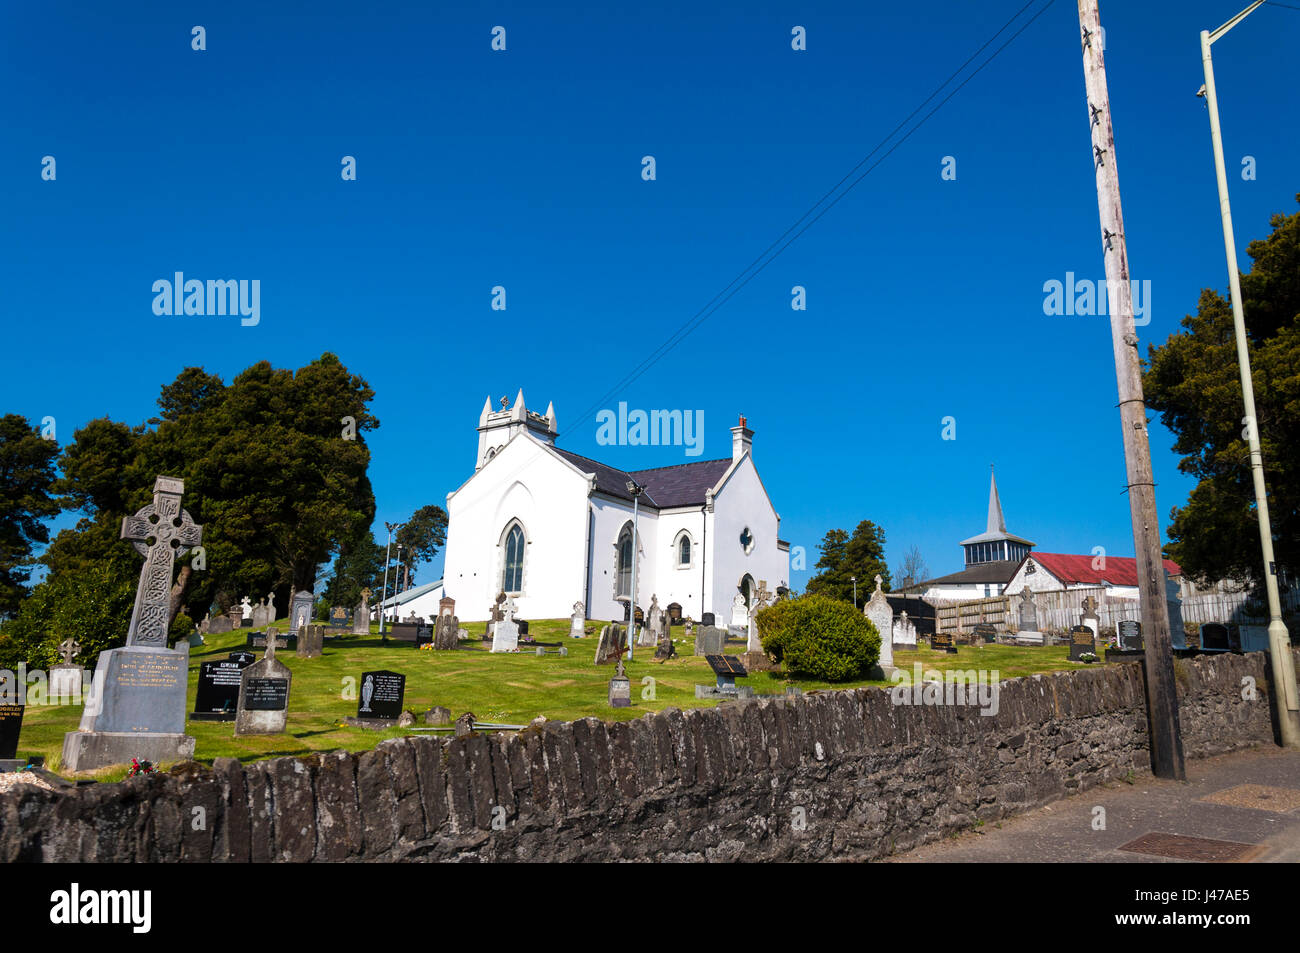 SAINT PATRICK'S CHURCH, CLAUDY, County Londonderry, Northern Ireland, Showing graveyard cemetery. - Stock Image